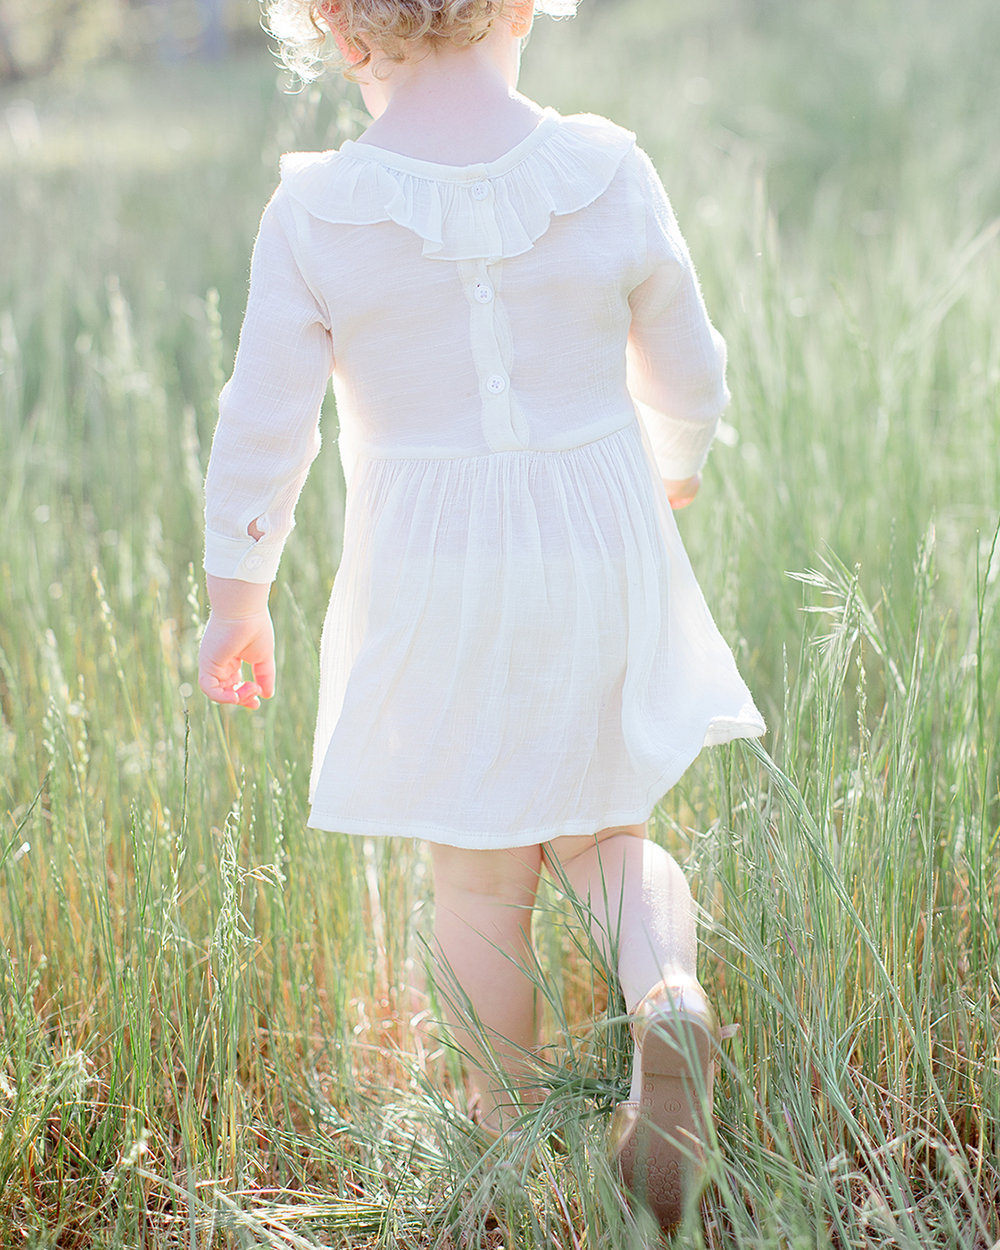 ADELE_GIRLS_BENDIGO_PHOTOGRAPHER_FAMILY_BABY_CHILD_MELBOURNE_PHOTOGRAPHY_014.jpg